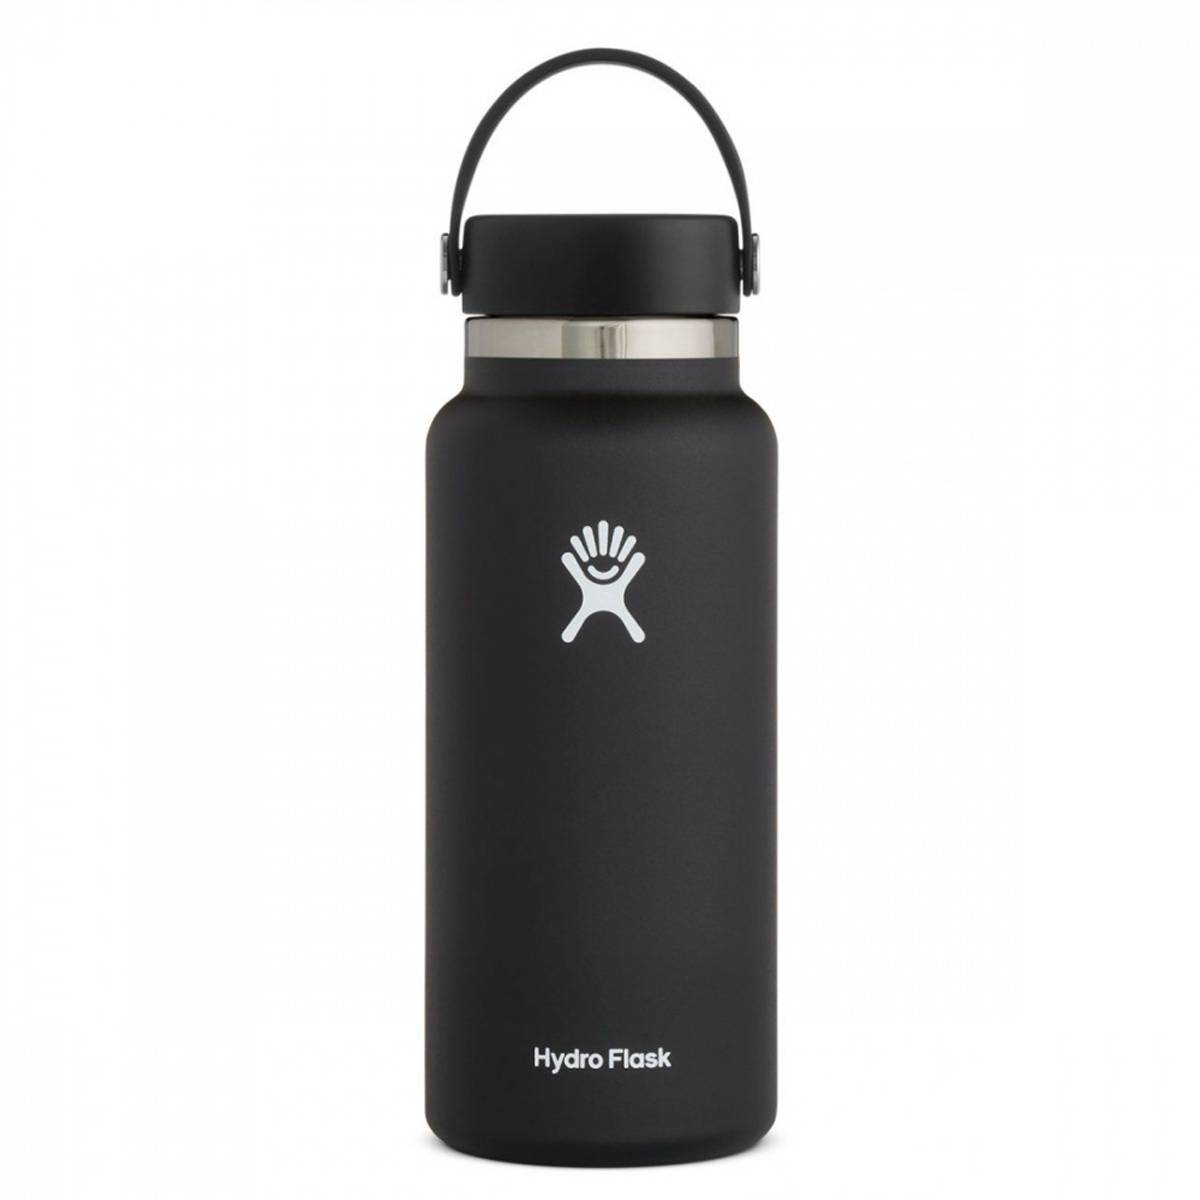 Termoflaske 946 ml, BLACK, Wide Mouth Flex Cap / Hydro Flask